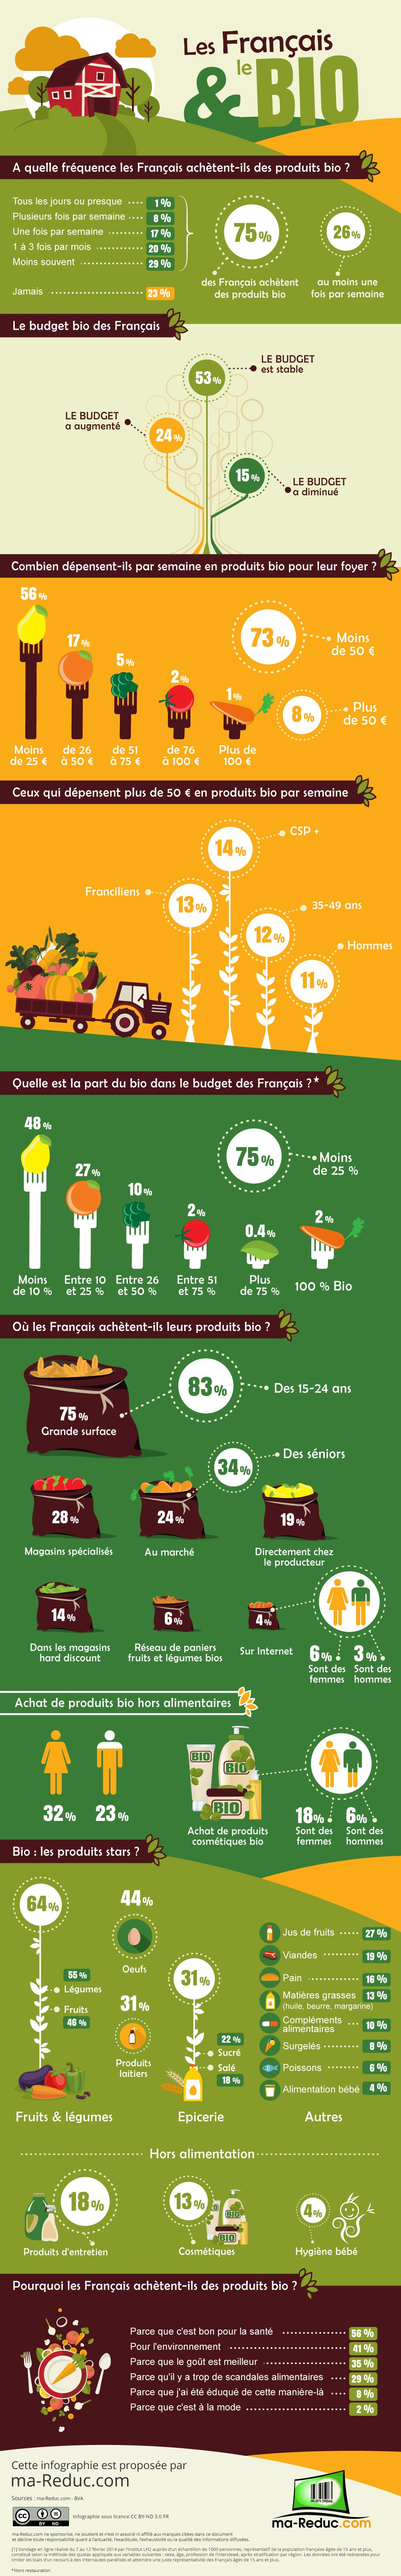 les fran u00e7ais  u0026 le bio r u00e9sum u00e9 dans une infographie